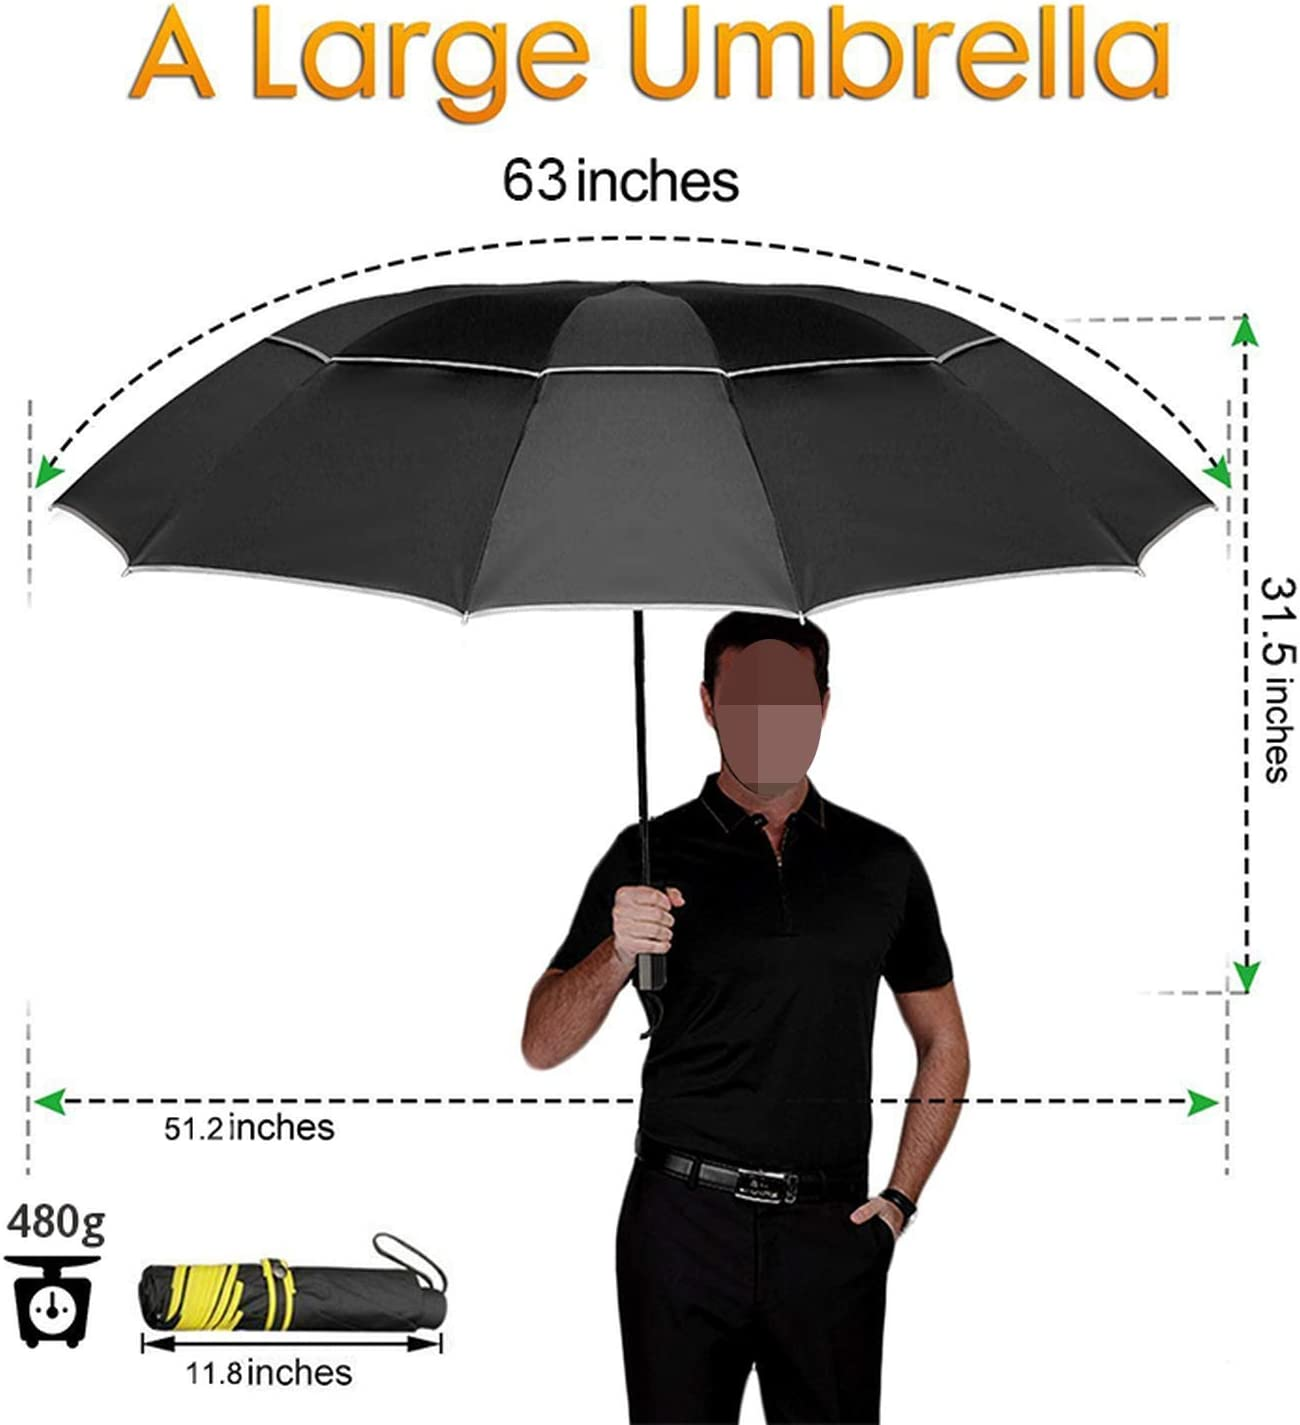 42 Inches Ladies 10 Ribs Rainproof Automatic Opening and Closing,Abstract Low Poly Background,Windproof RLDSESS Abstract Compact Patio Umbrella Men